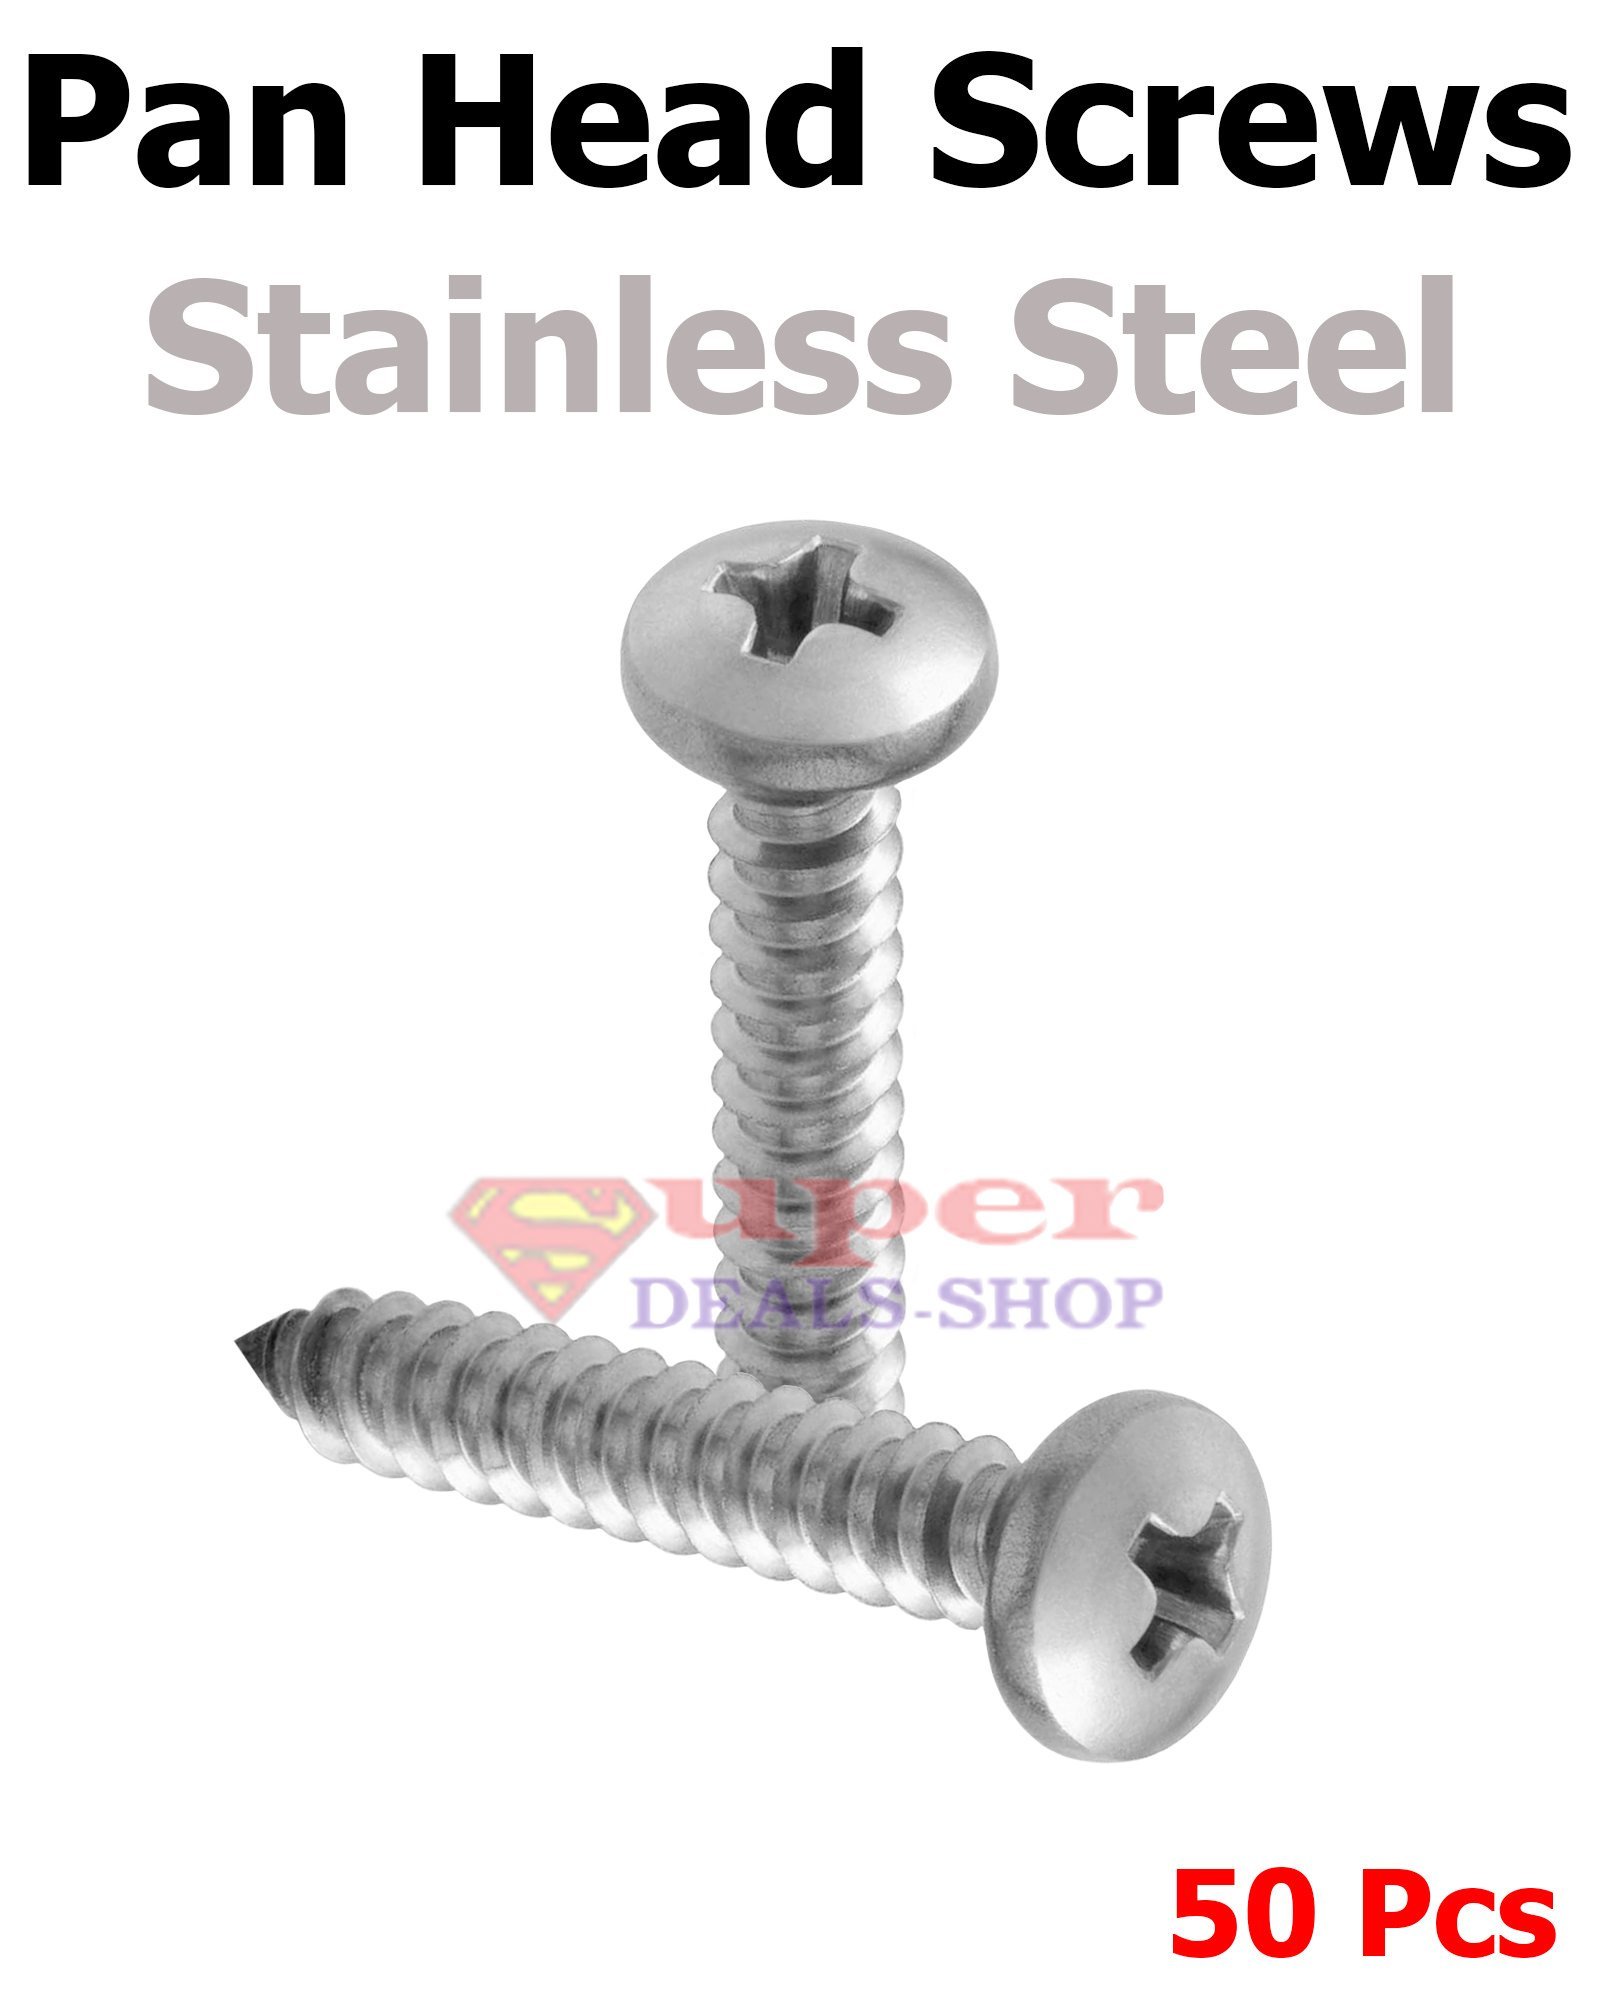 50 Pcs #10 x 1-1/4 Pan Head Sheet Metal Wood Screws Phillips Drive Stainless Steel 18-8 Full Thread Right Hand Threads Bright Finish Self-Tapping Made in US Super-Deals-Shop